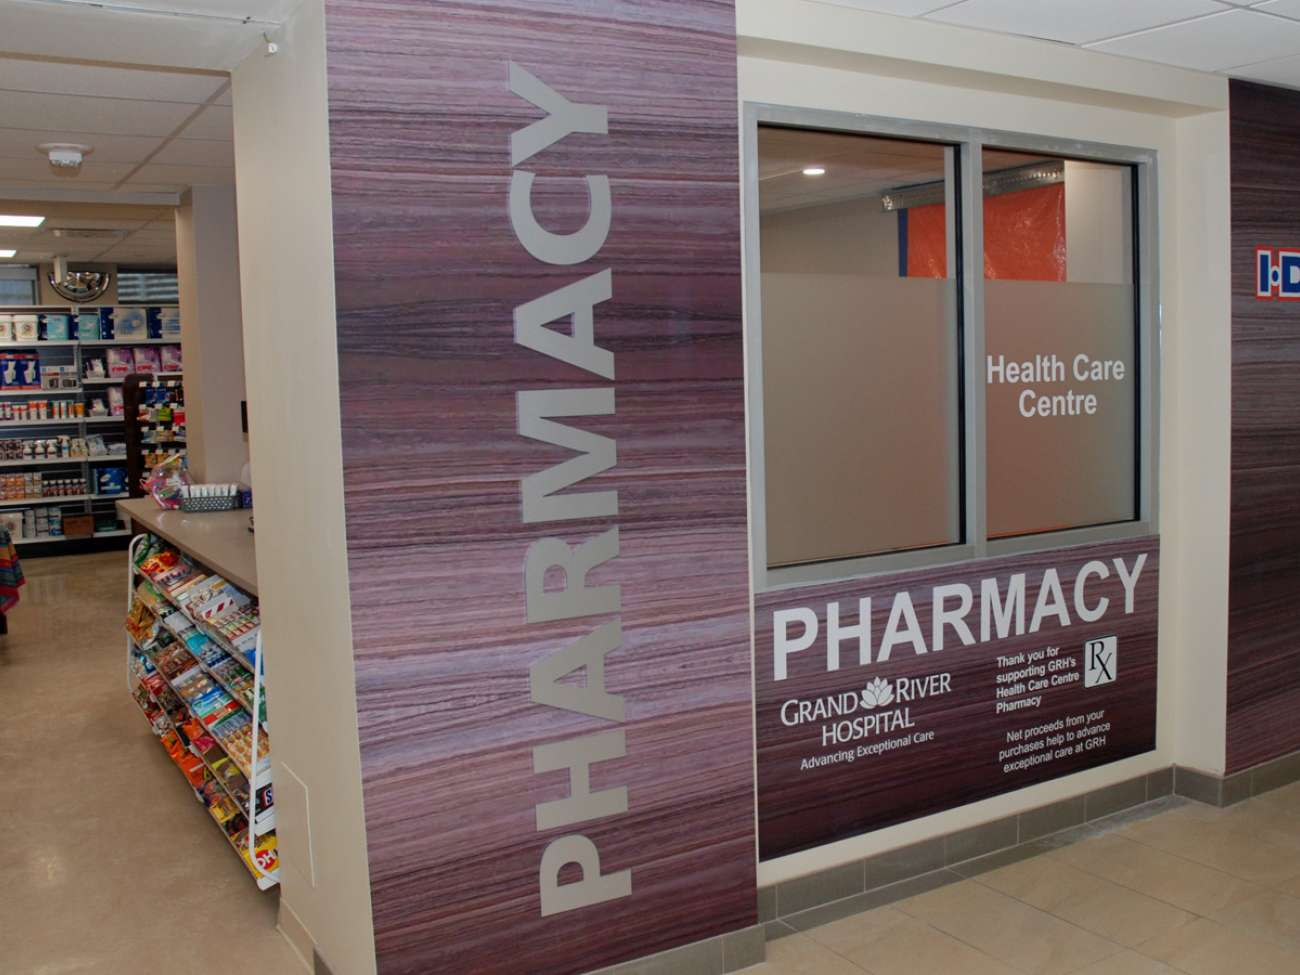 Health Care Centre Pharmacy is located right inside the KW Campus main lobby, at 835 King Street West. Net proceeds from the pharmacy support care at GRH.